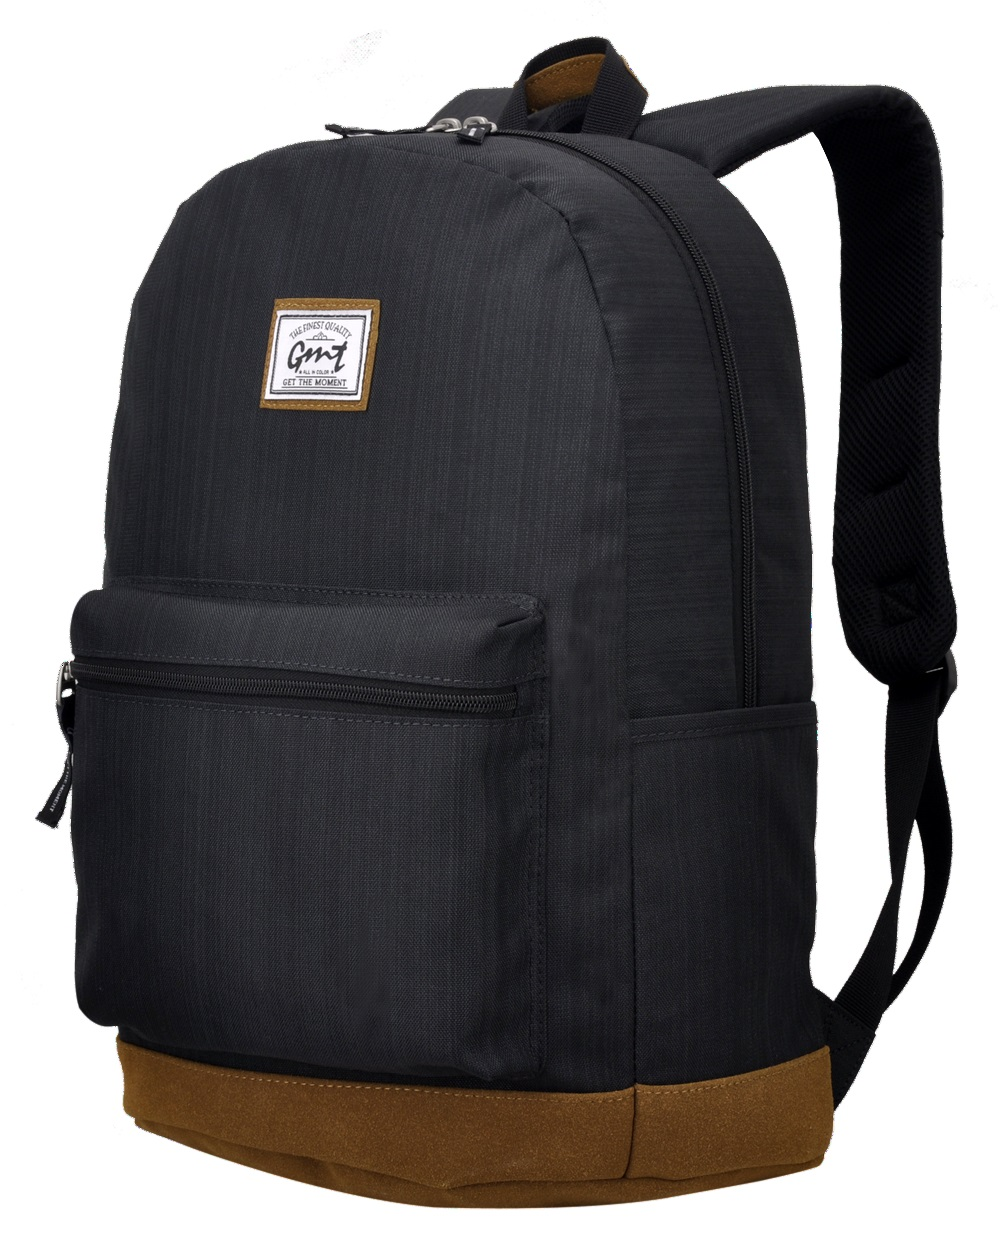 GMT Rucksack Windsor